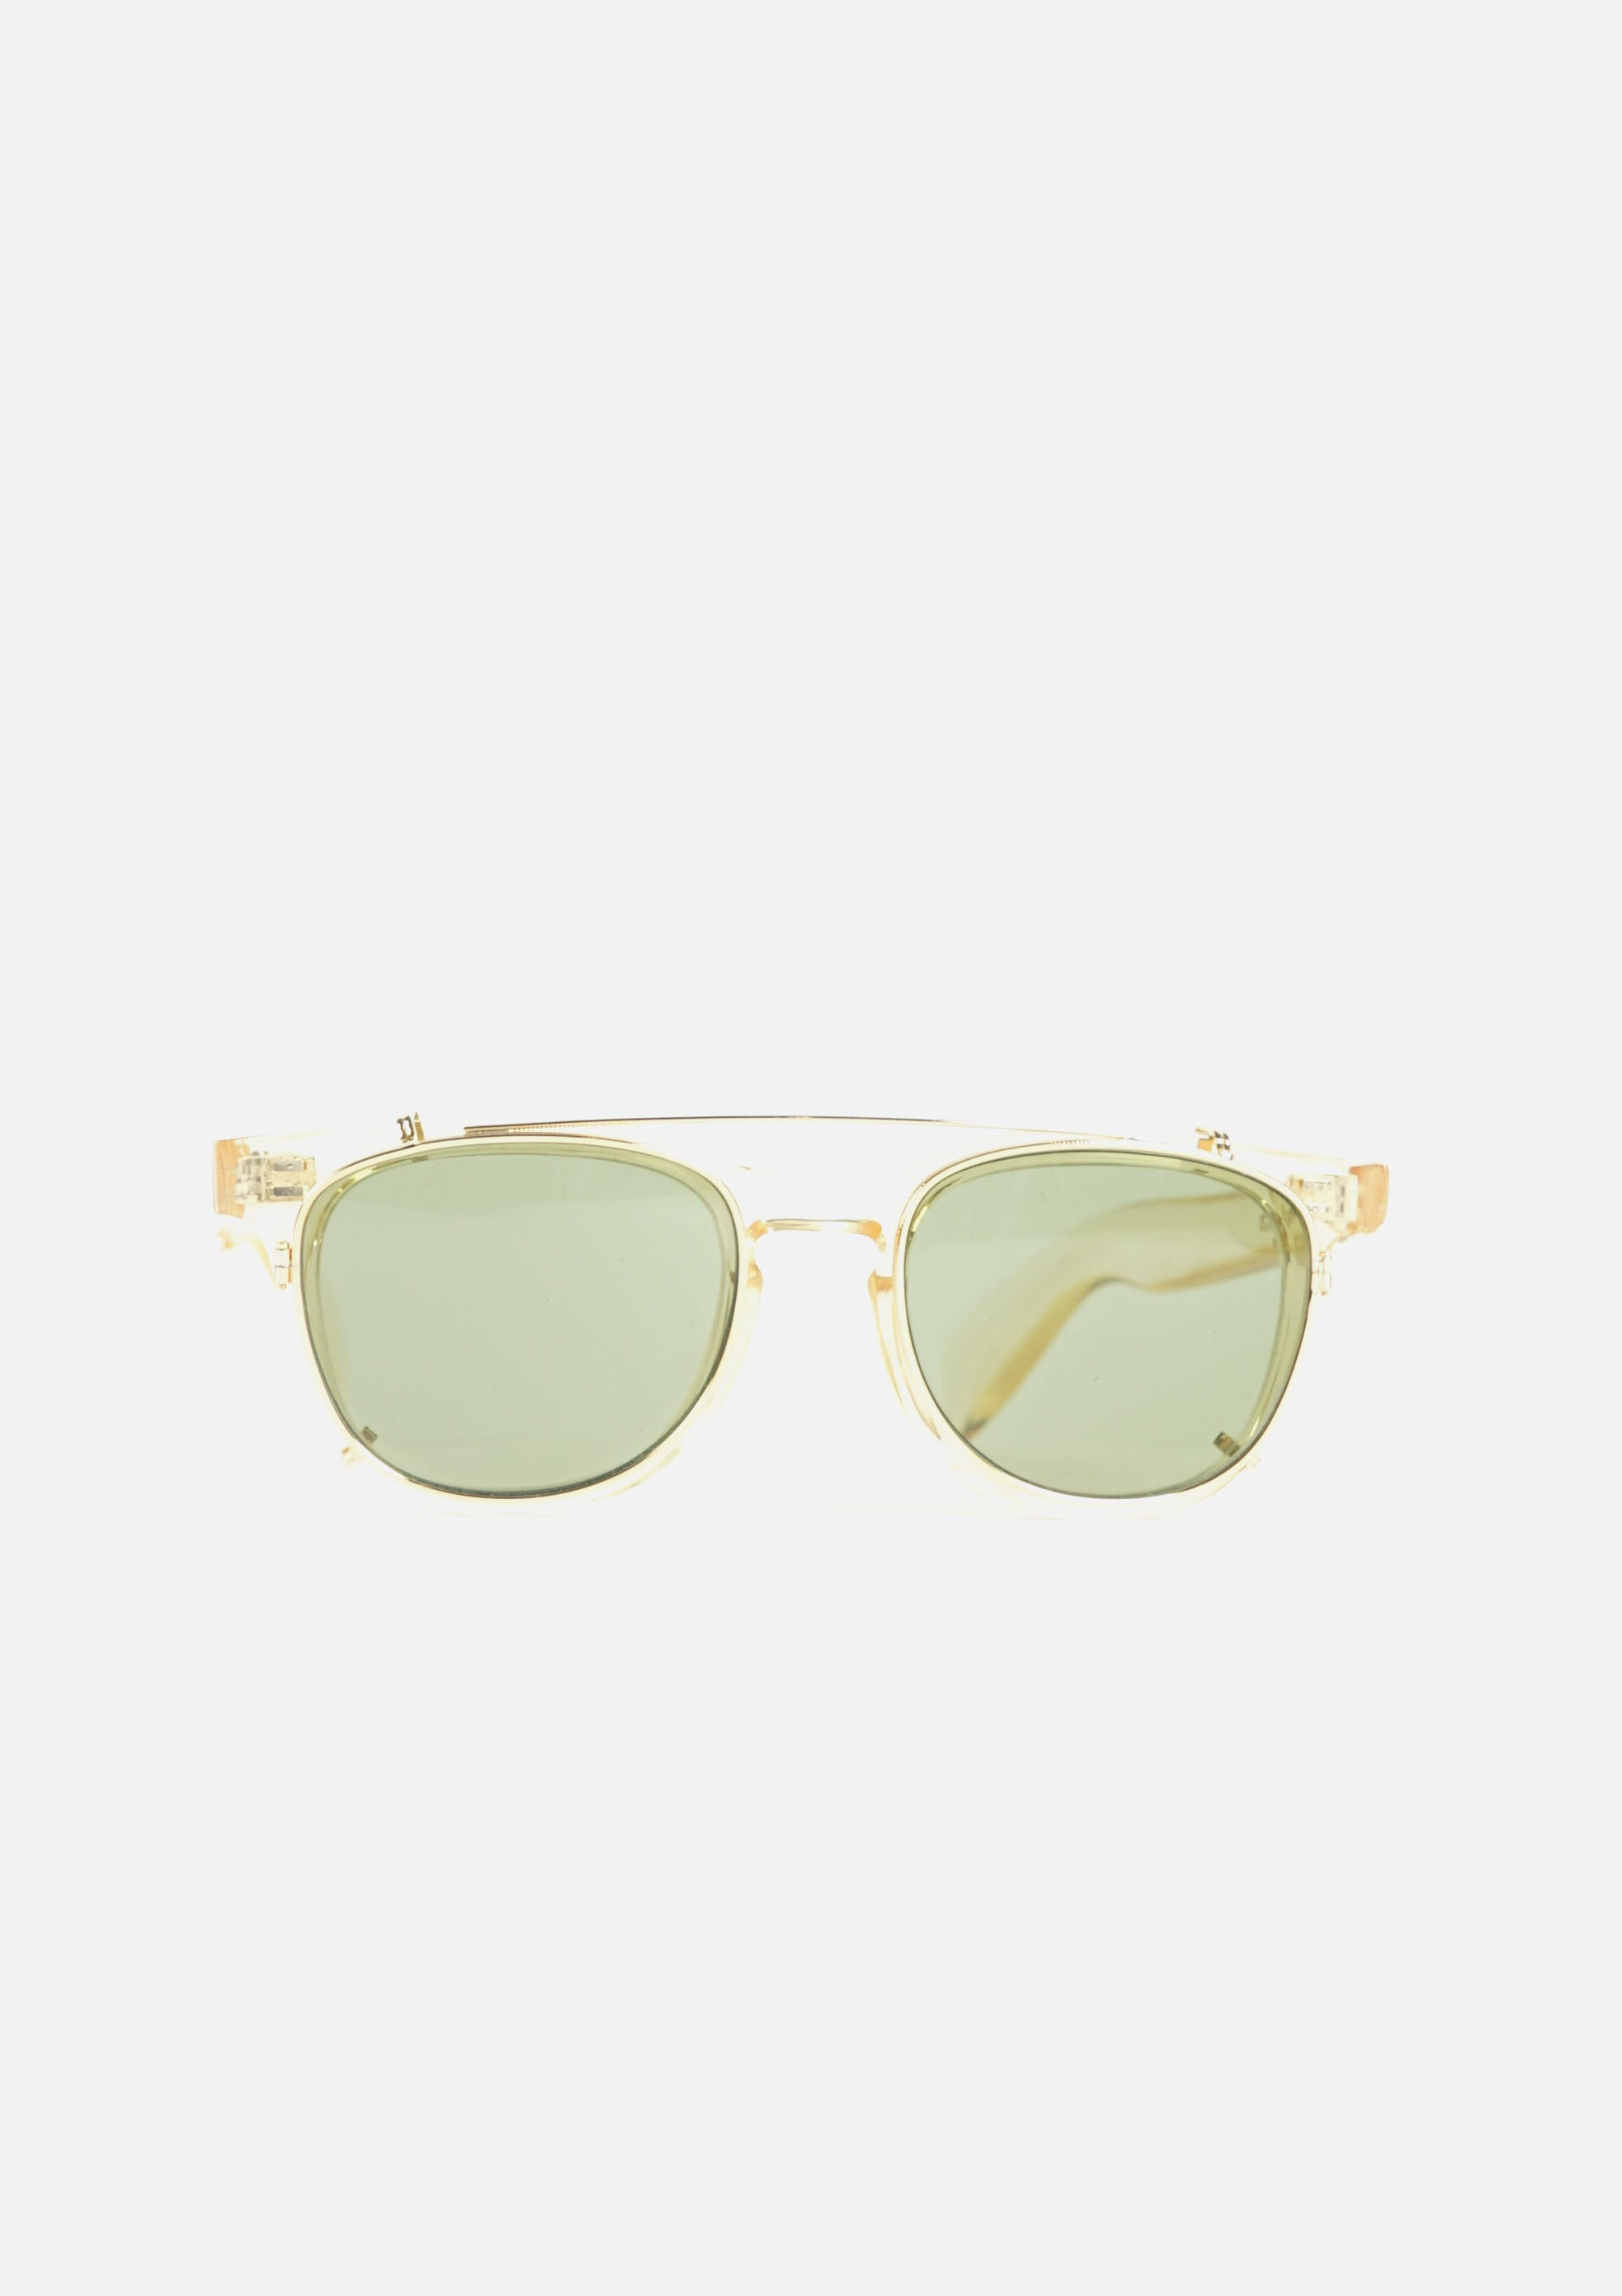 SKY Clip on Sunglasses Clear Yellow